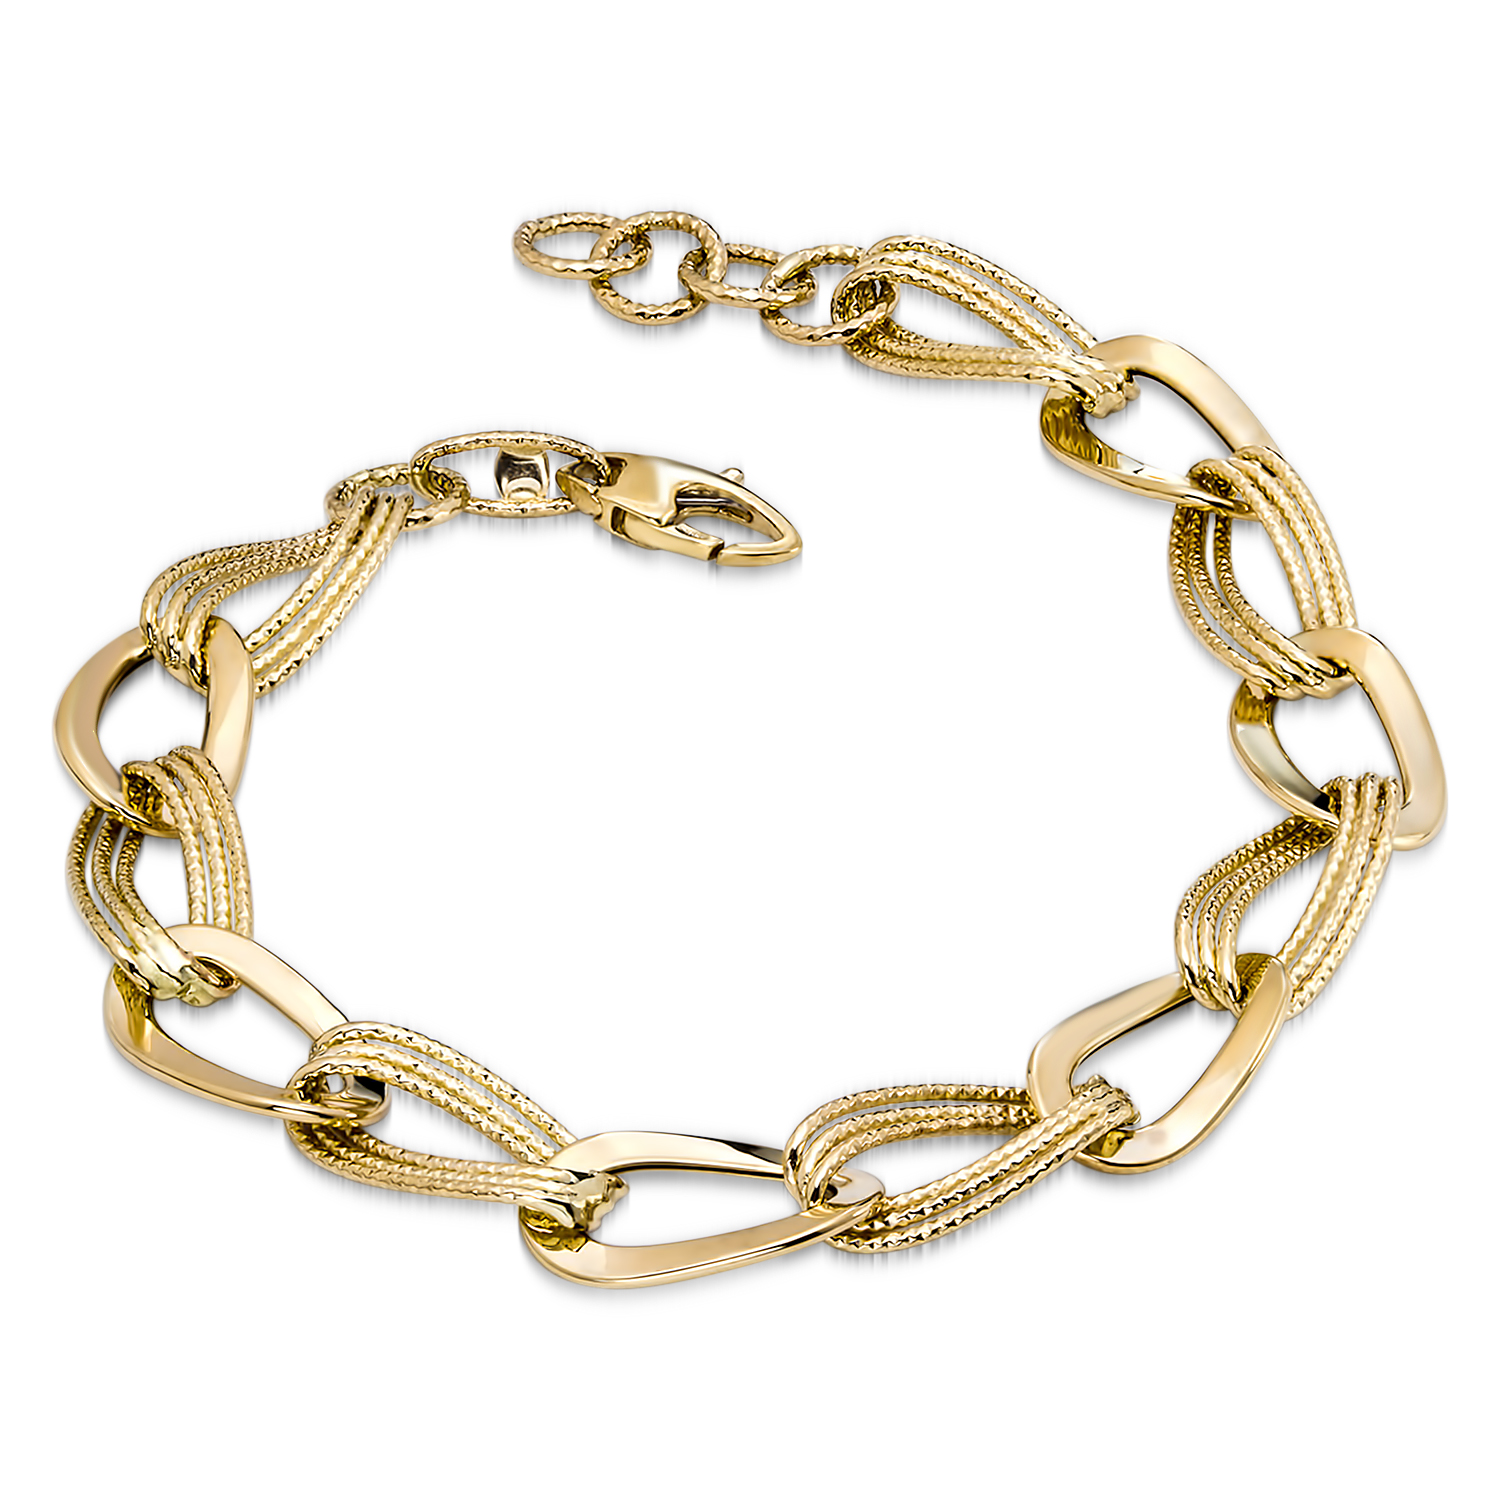 14k Gold Polished & Textured Hollow Bracelet